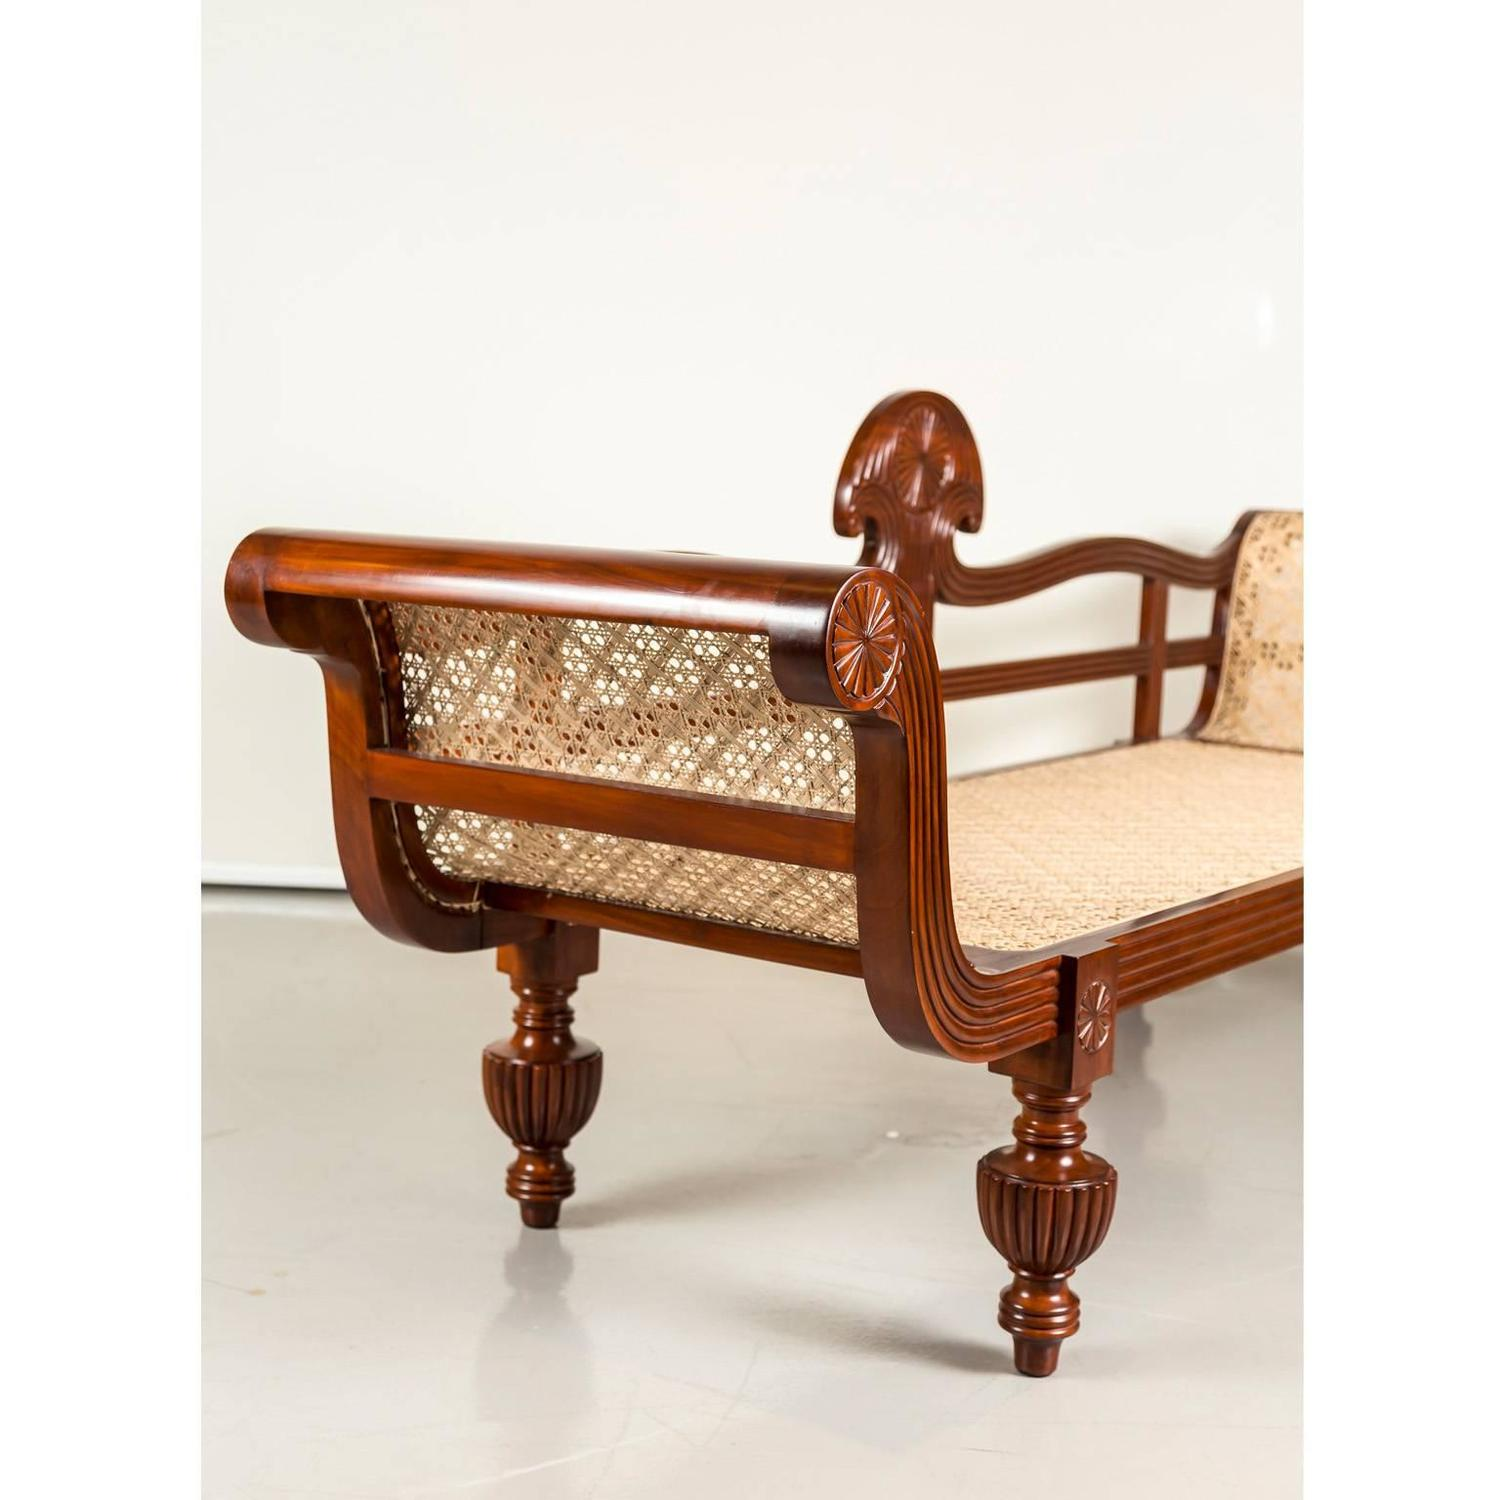 Antique Anglo Indian Or British Colonial Mahogany Sofa For Sale At 1stdibs